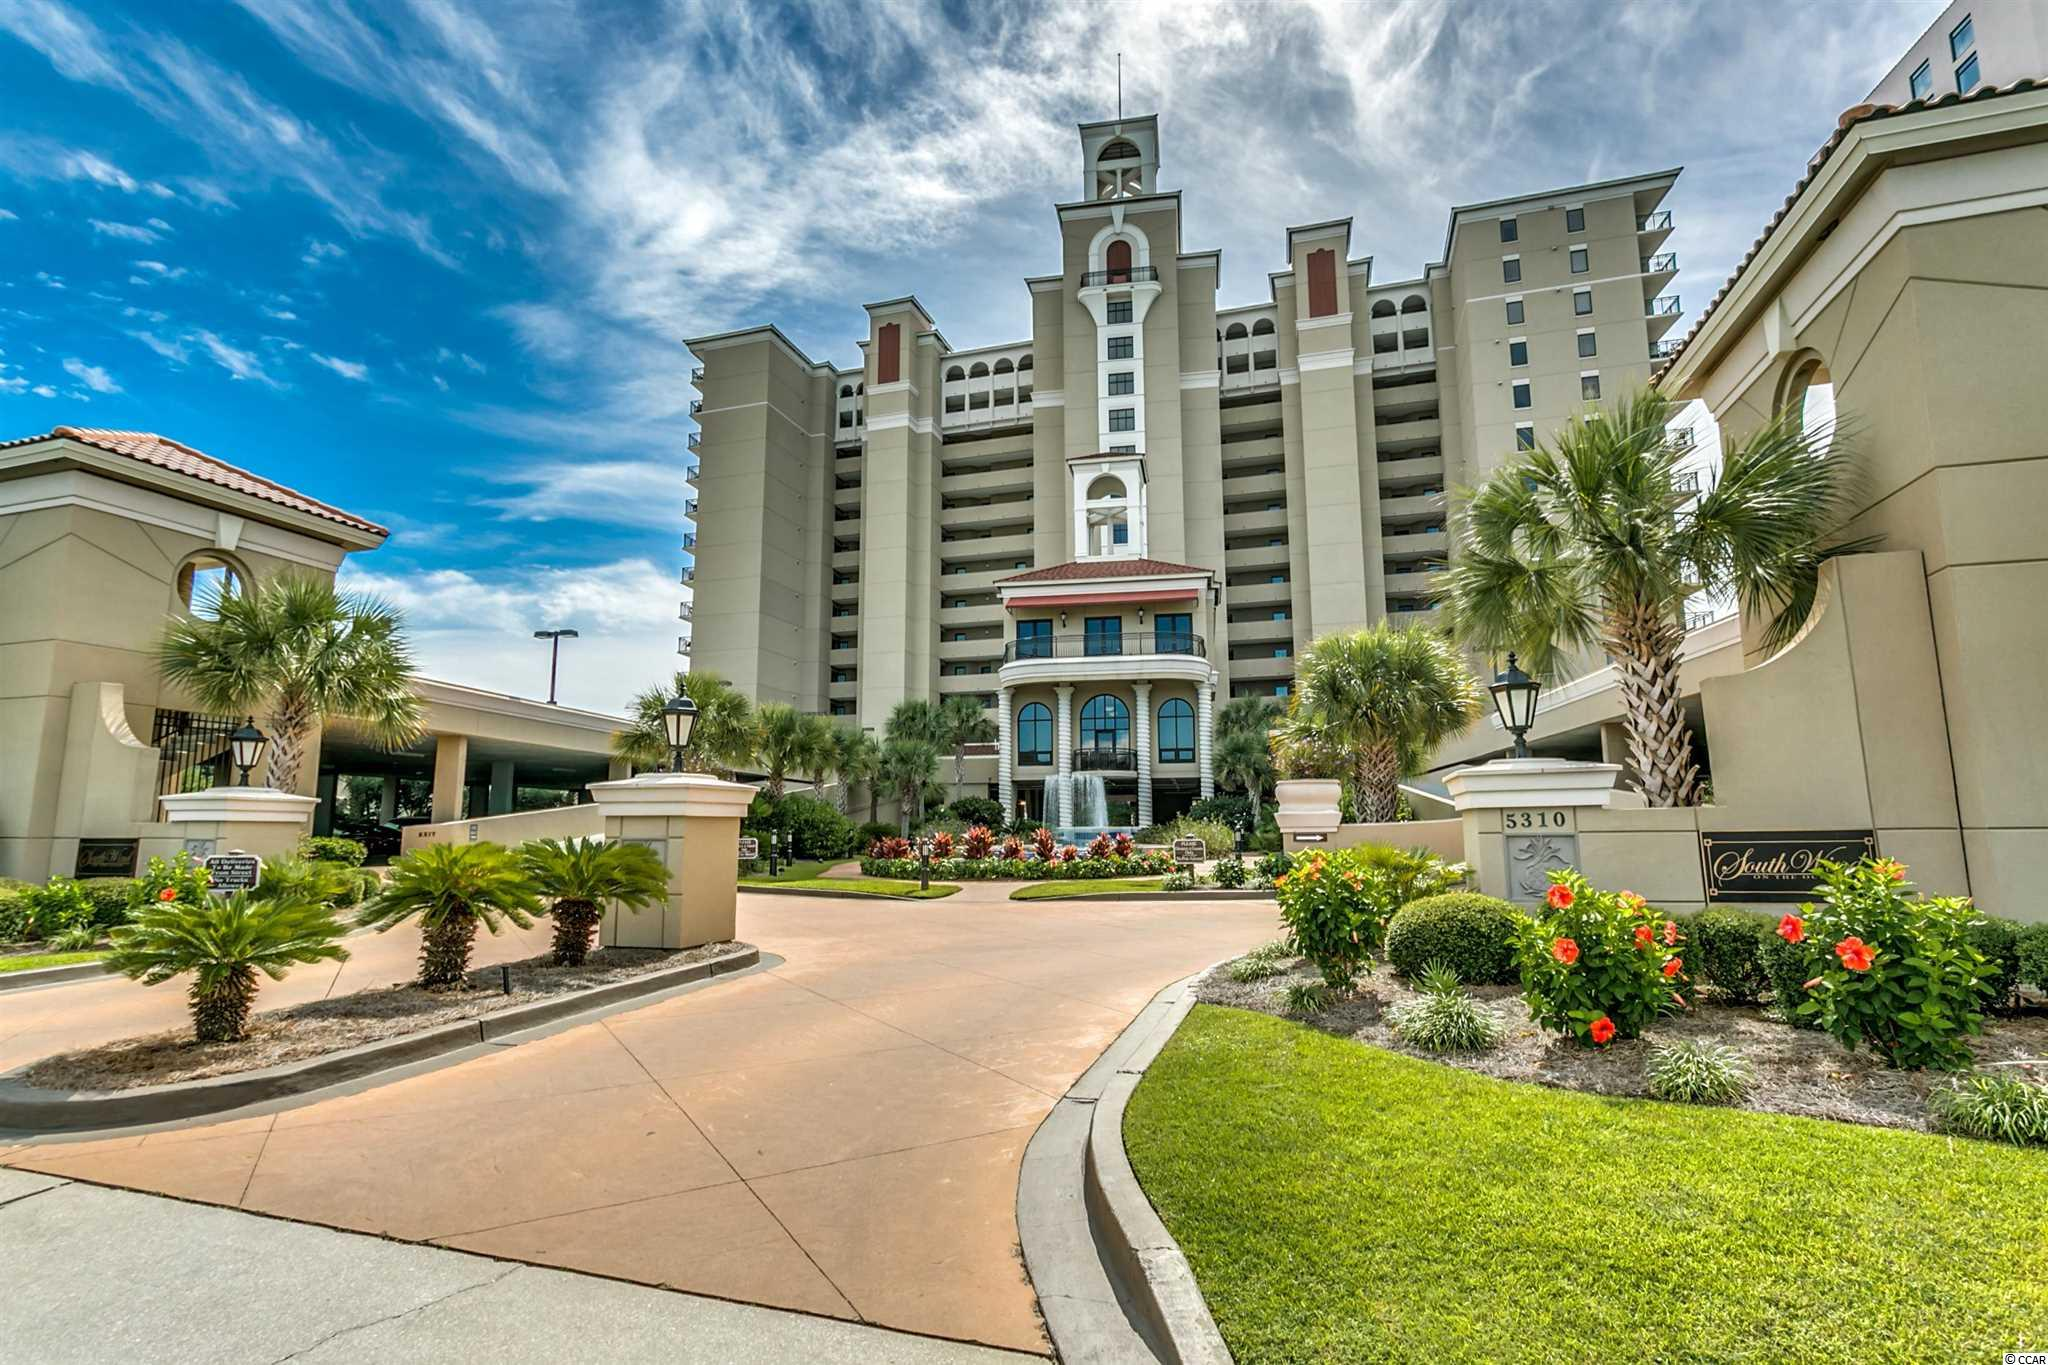 """Amazing opportunity to own this spectacular oceanfront condo at Southwind!This fully furnished 5 bed 4 bath unit has floor to ceiling glass sliders with an expansive oceanfront balcony accessible through the living room and master suite. Southwind features an indoor and outdoor pool, lazy river, sun decks, gym and much more. Located on the north end of Myrtle Beach known as the """"Golden Mile"""", it is close to fine dining, shopping, entertainment. Come make this luxury condo at Southwind your new home, vacation getaway or investment property. Contact the listing agent for more information and to schedule a viewing."""